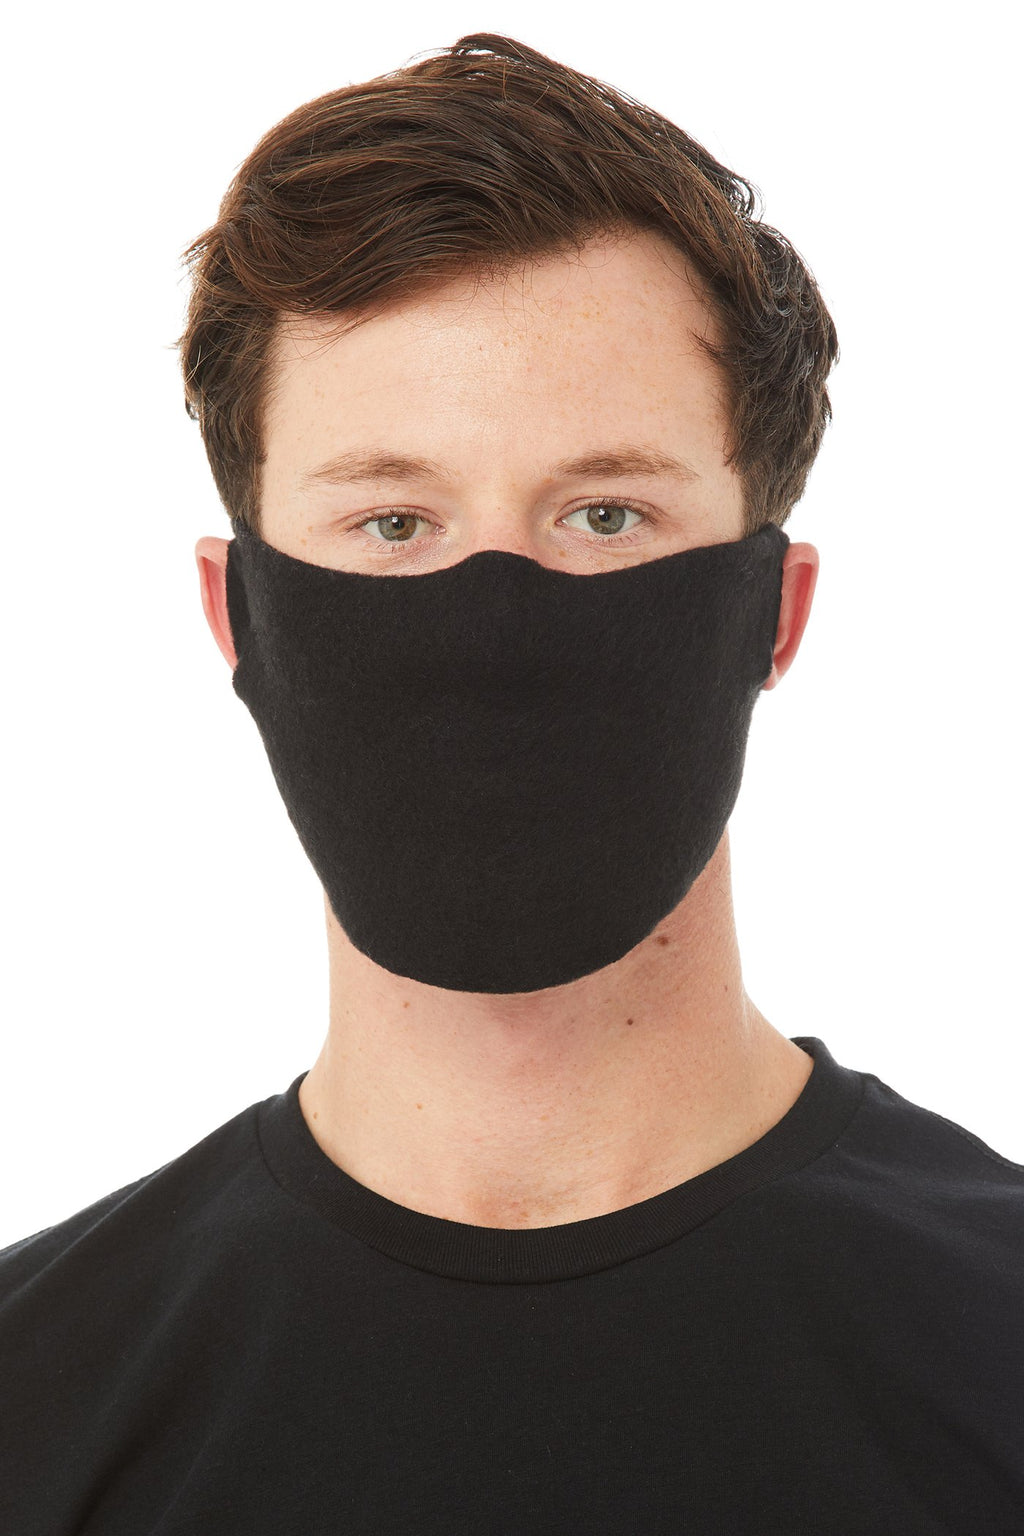 Daily Face Cover Mask 4 Pack in Black